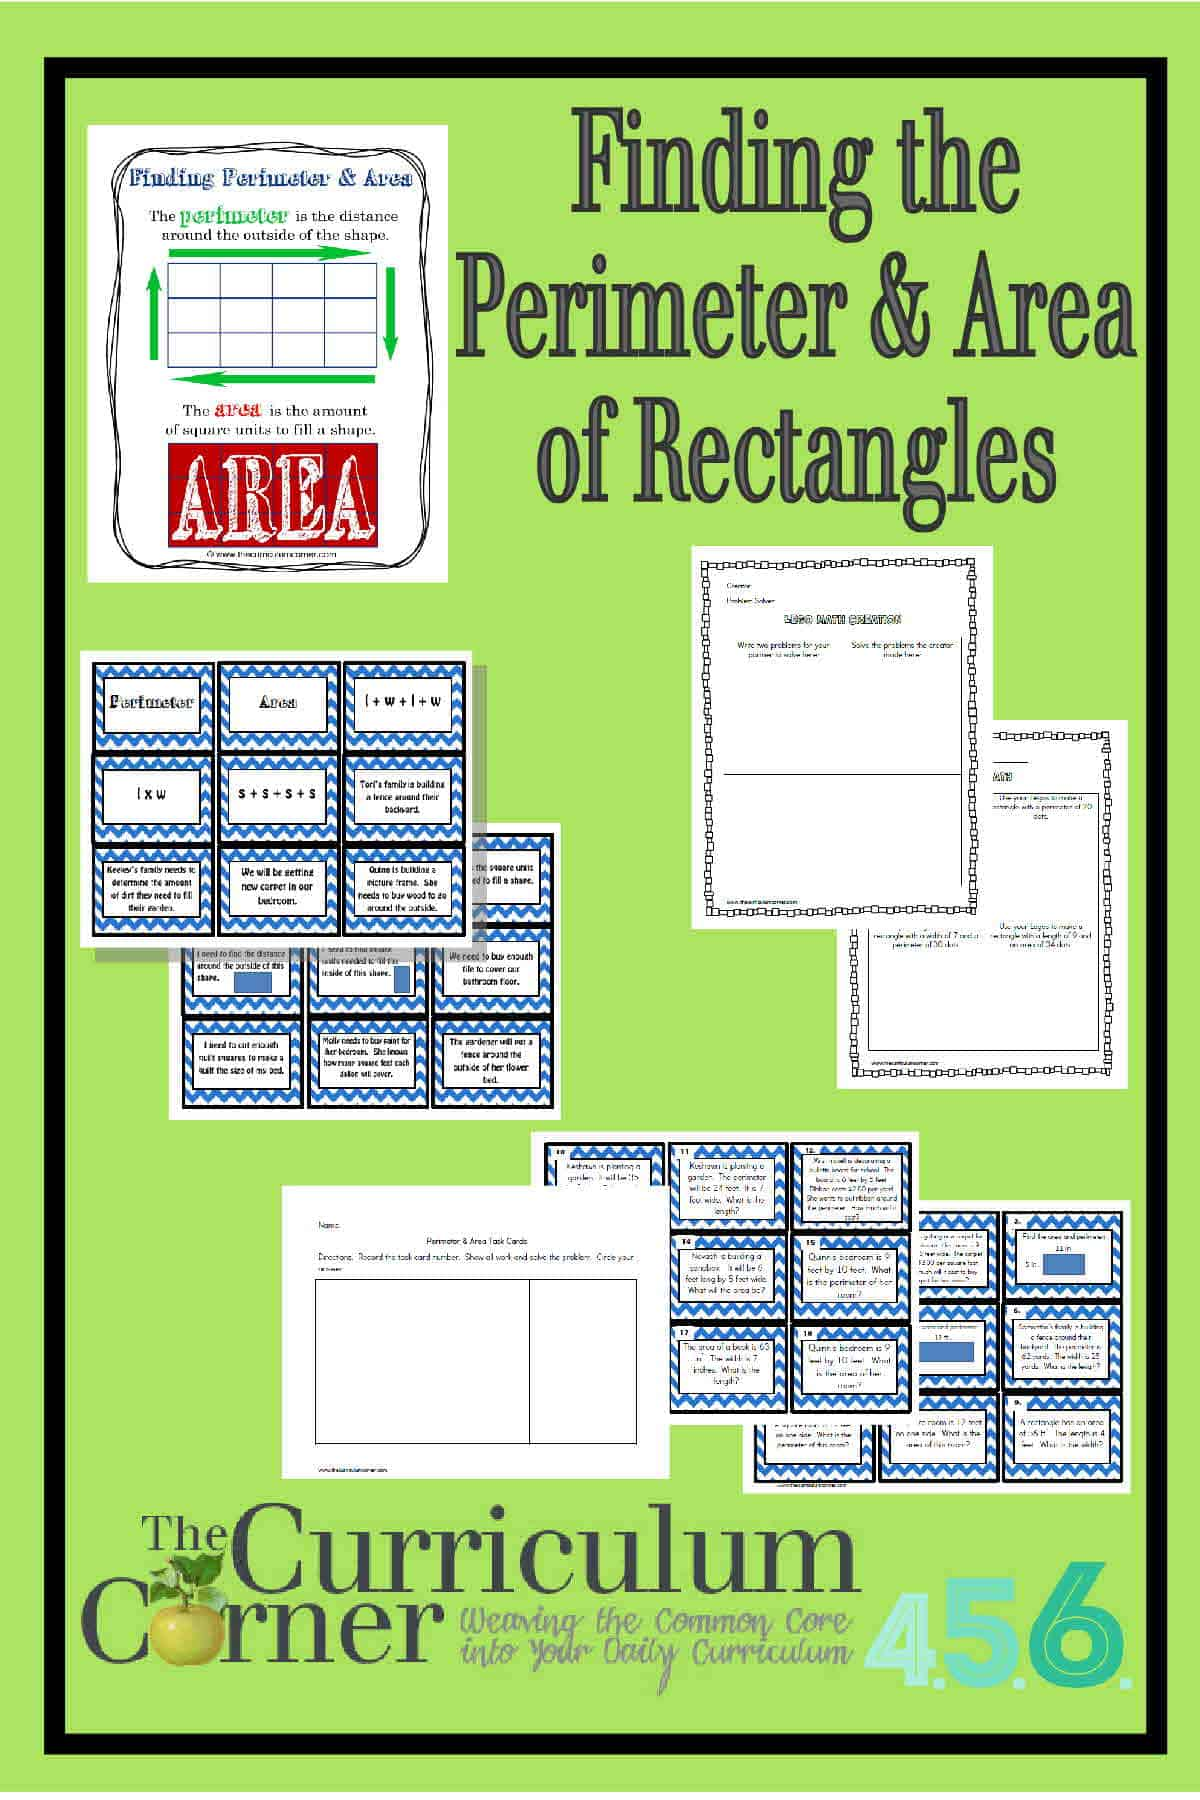 worksheet Finding Area And Perimeter perimeter and area of rectangles the curriculum corner 4 5 6 finding activities from free includes anchor chart